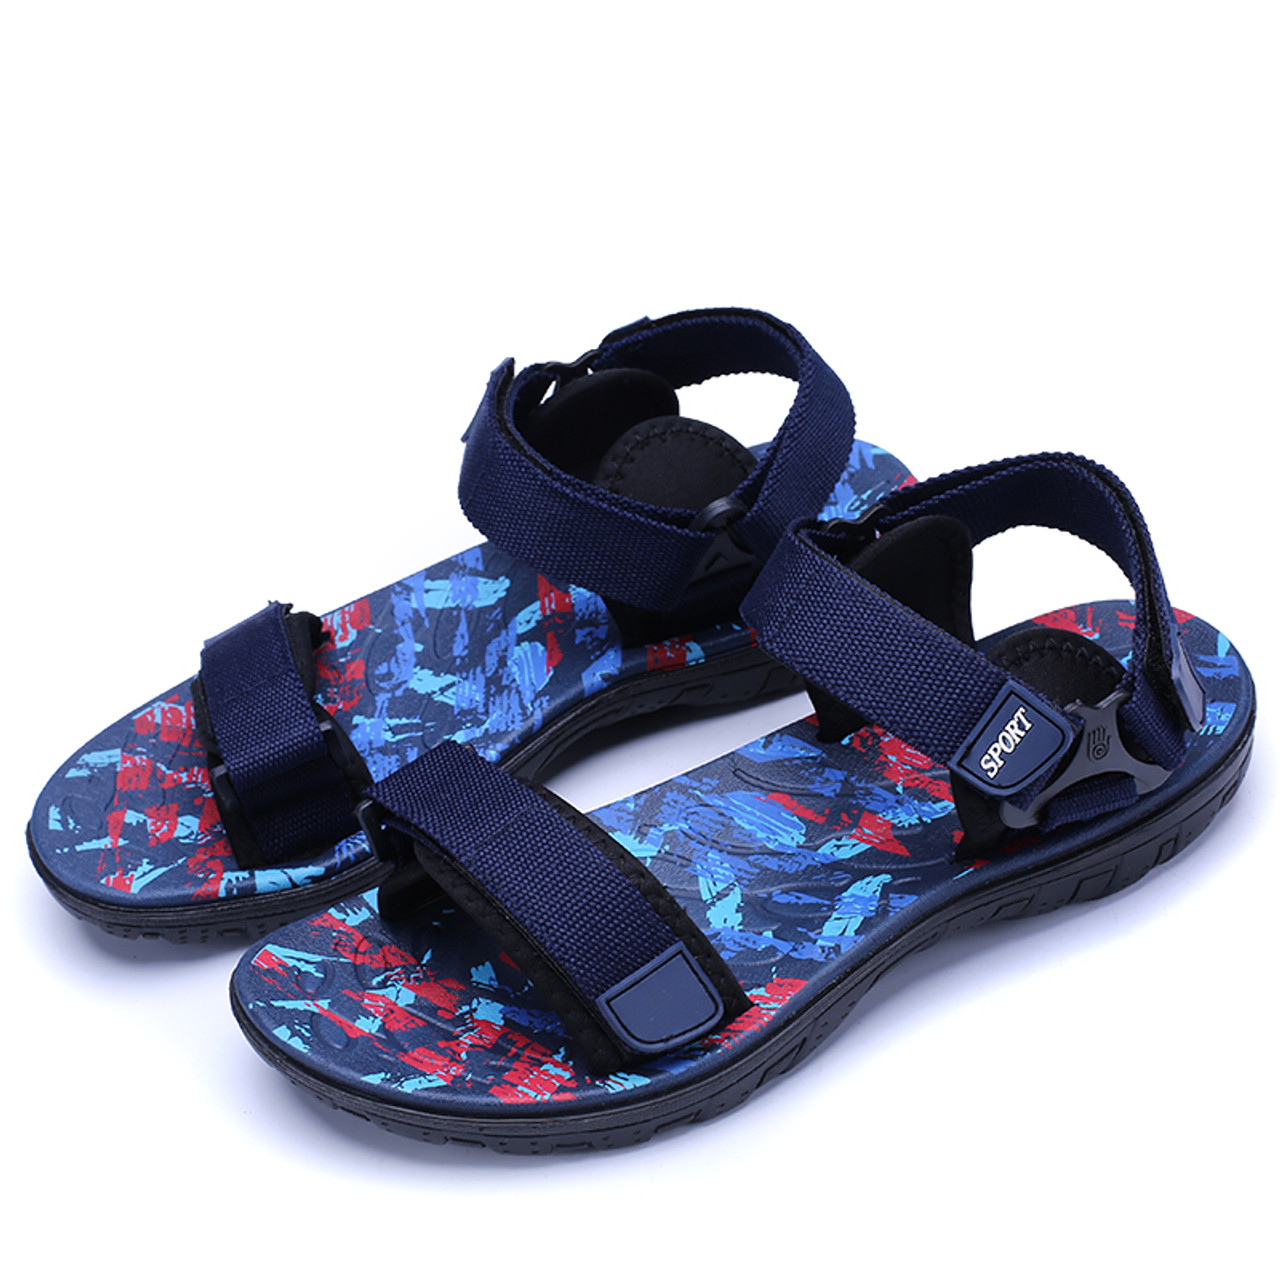 d647ed983897e4 ... New Sandals Men Summer Beach Shoes Sandals Designers Mens Sandals  Slippers For Men Zapatos Sandalias Hombre ...